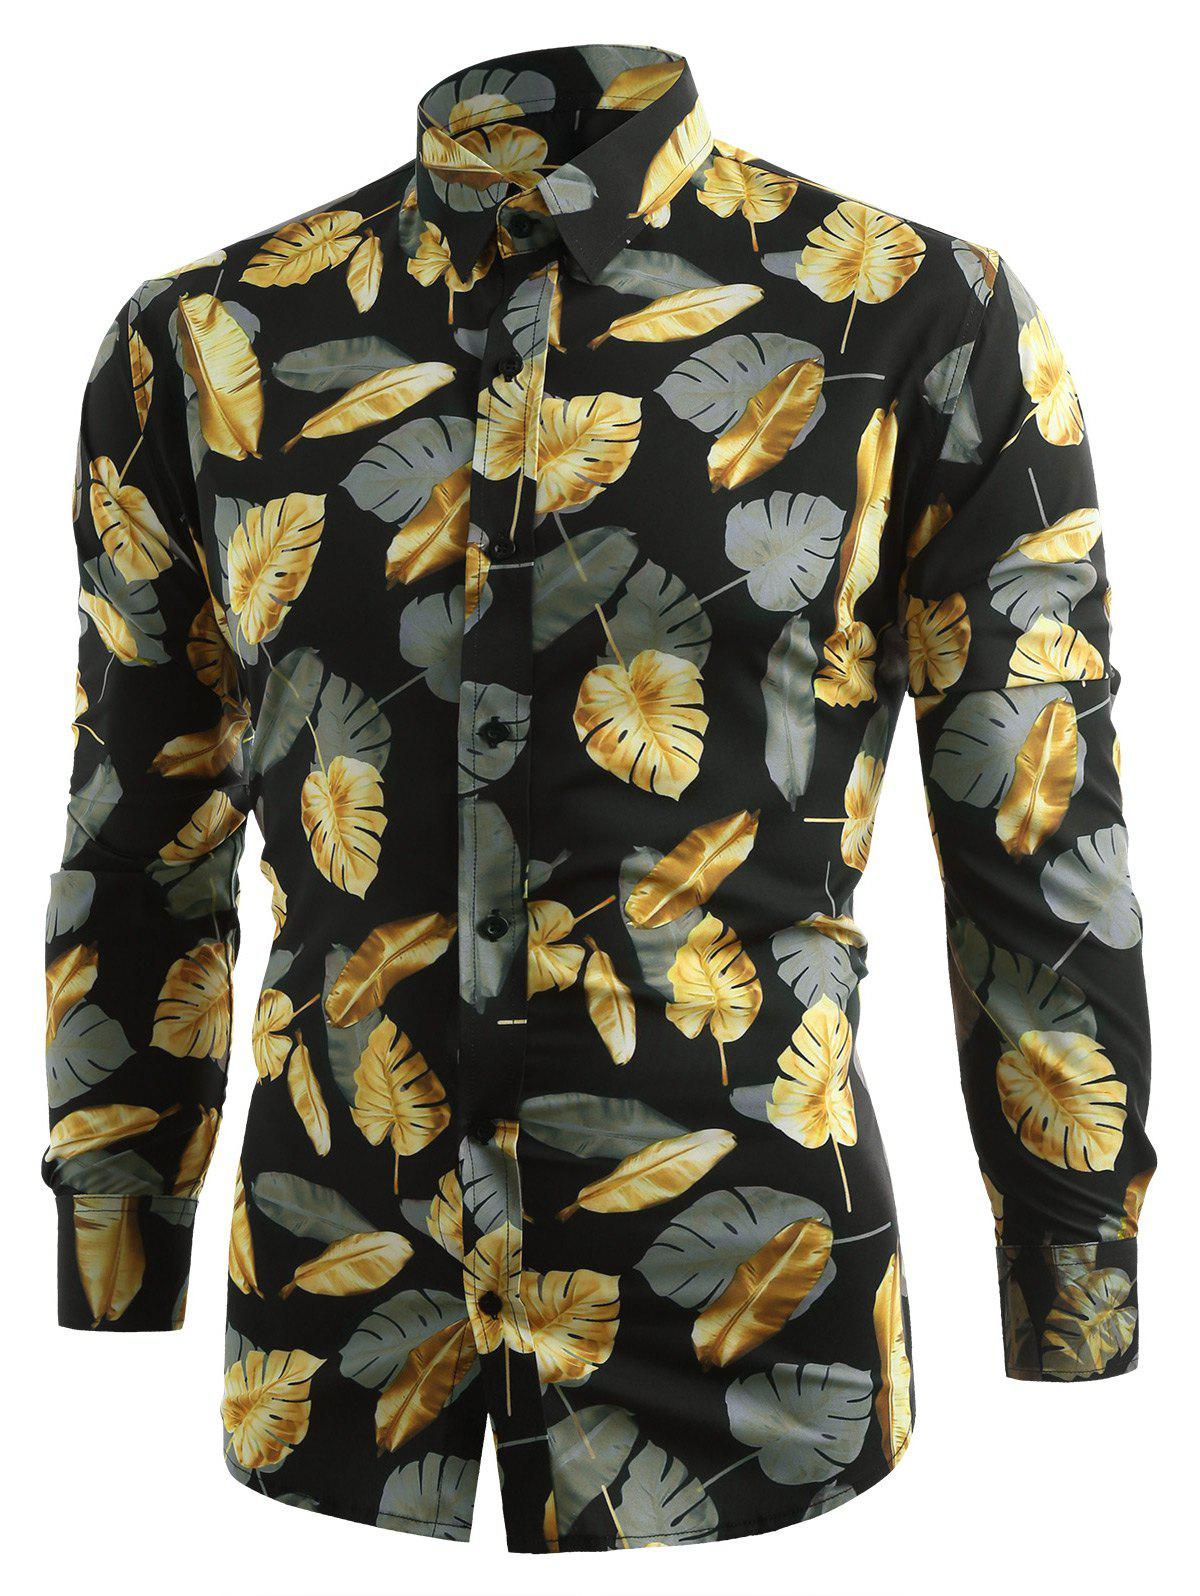 Shop Long Sleeve Allover Golden Leaves Printed Shirt